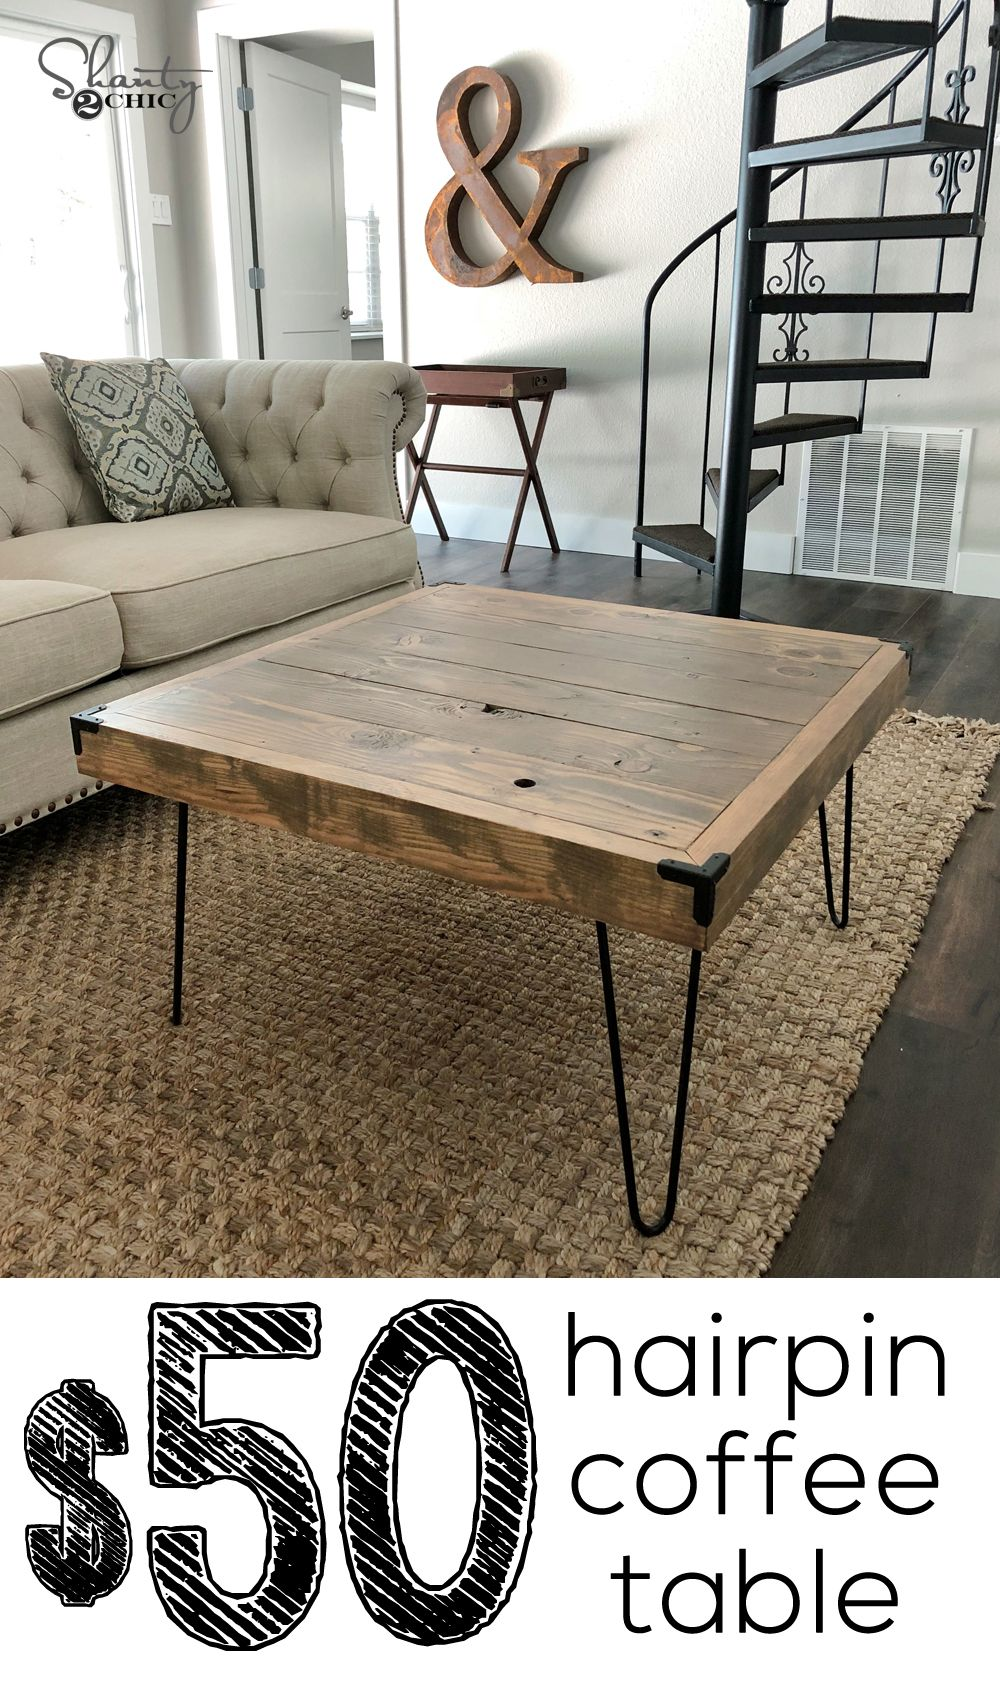 Diy 50 Hairpin Coffee Table By Shanty2chic Coffee Table